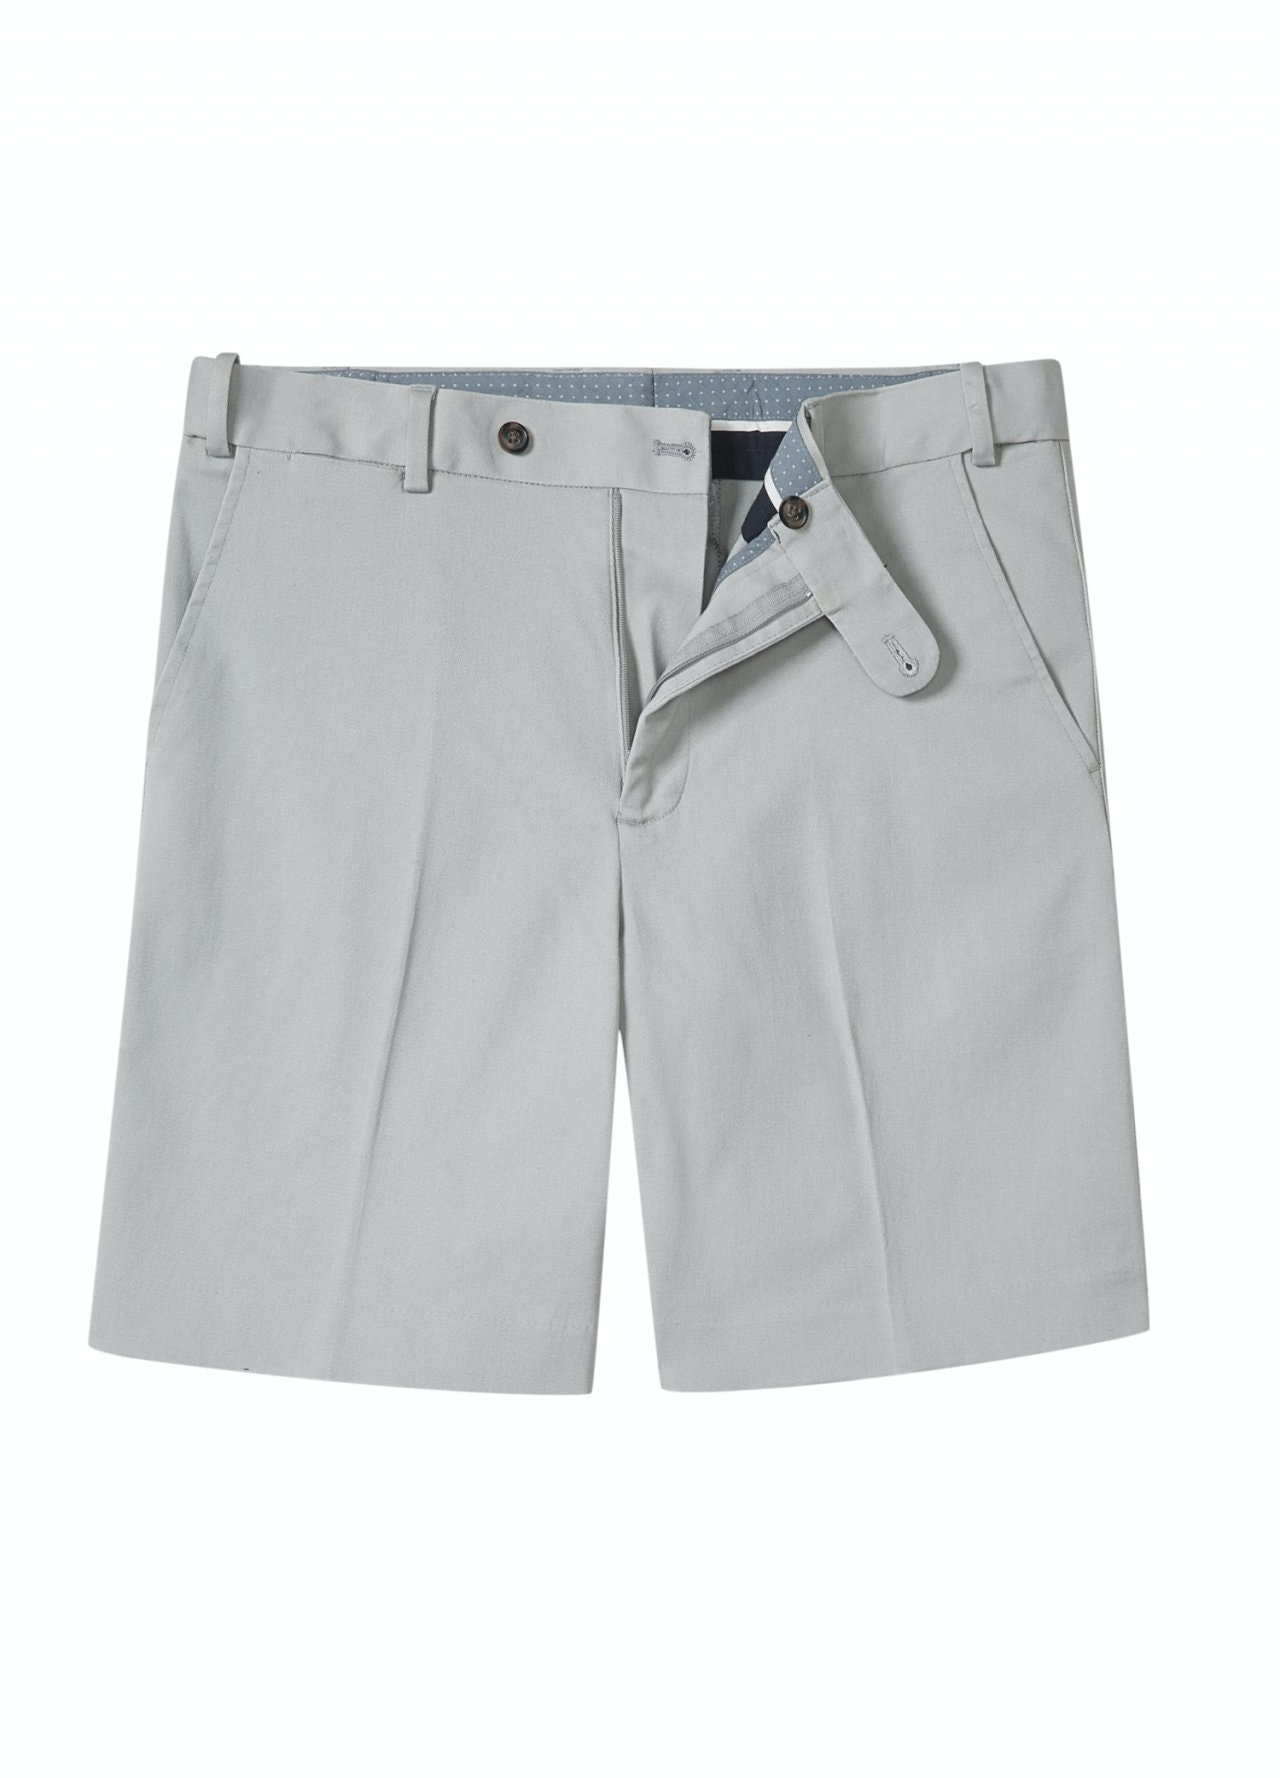 Skopes Biarritz Chino Shorts Grey